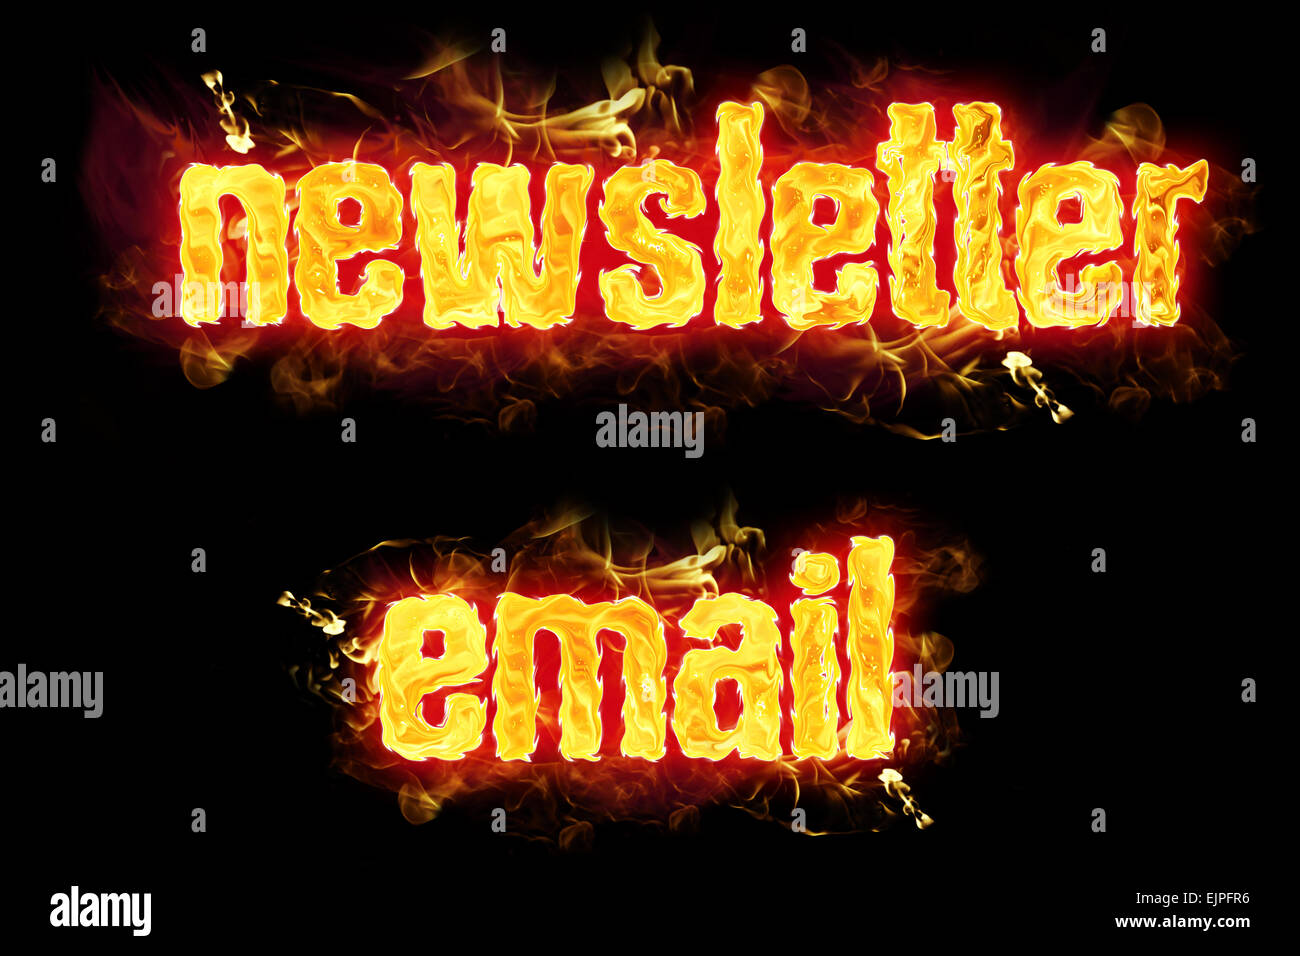 Fire newsletter email text badges with burning flames. - Stock Image